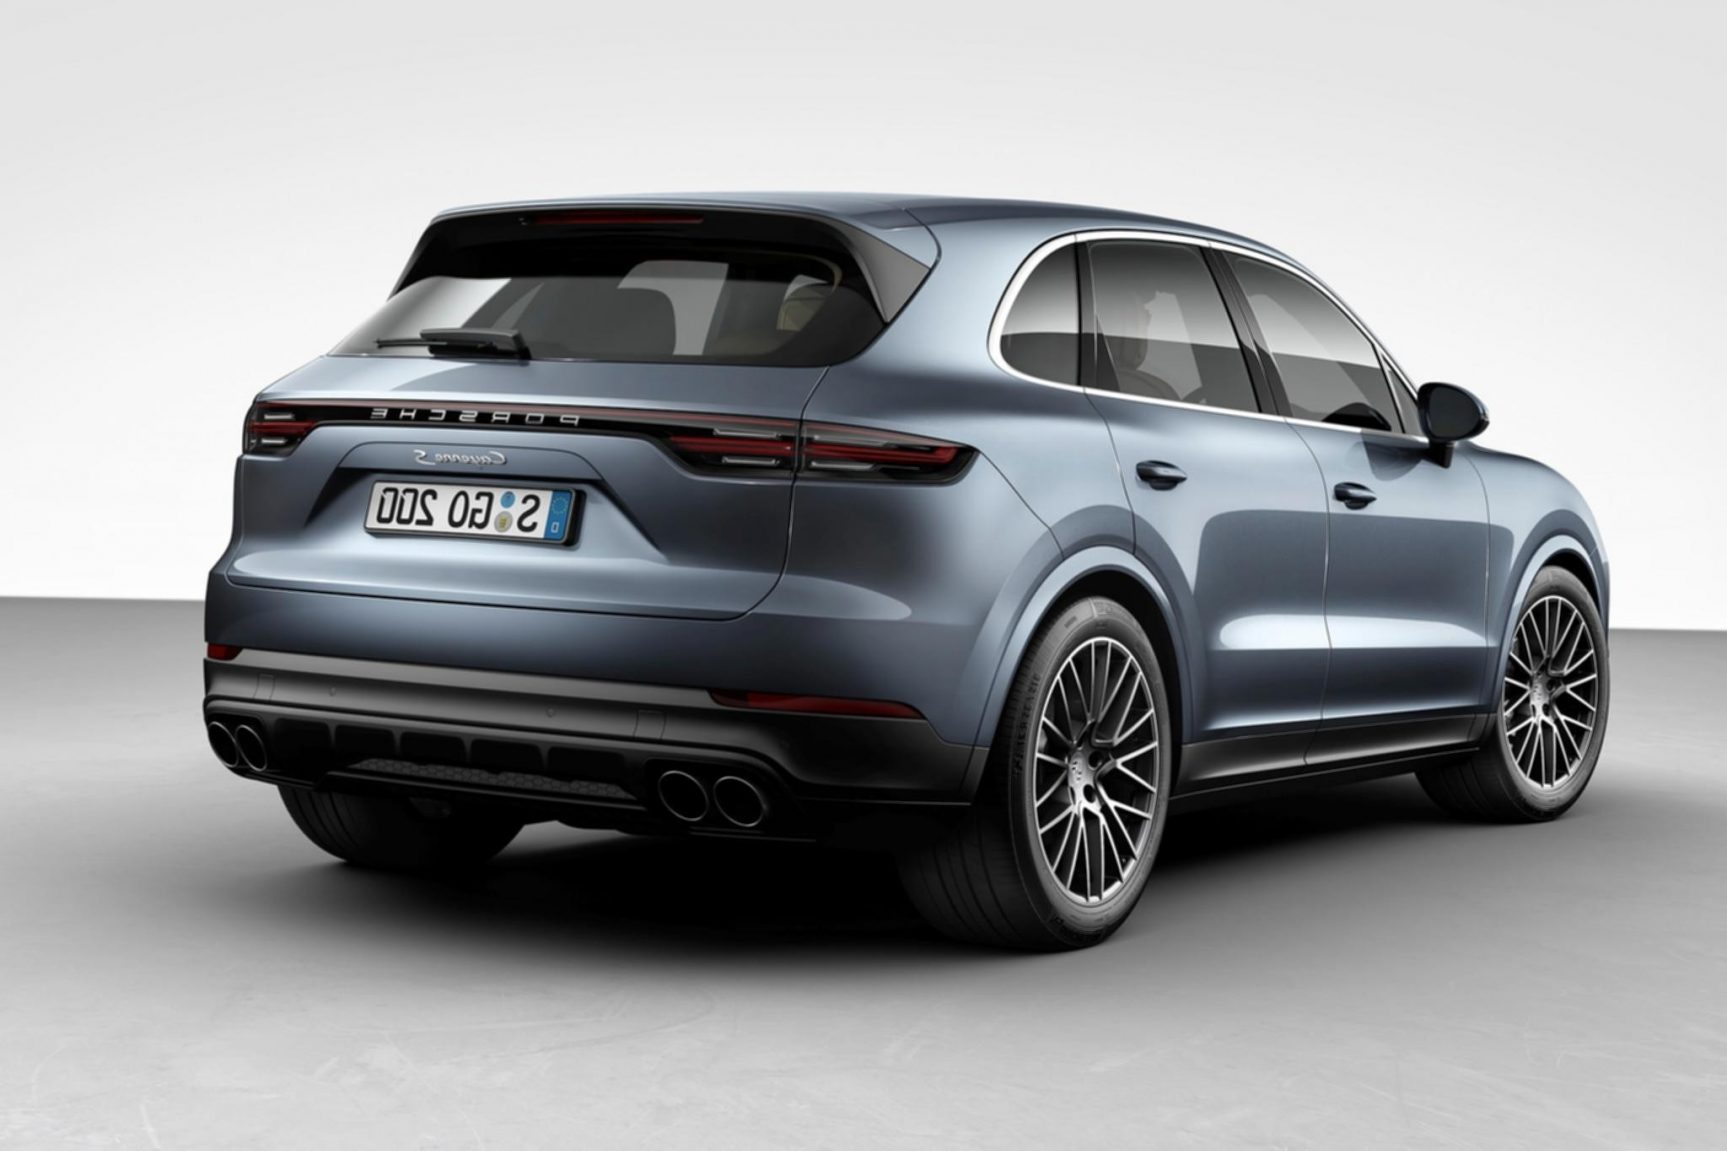 2020 Porsche Macan Exterior Wallpaper Compact Sport Utility Vehicle 1727x1151 Download Hd Wallpaper Wallpapertip